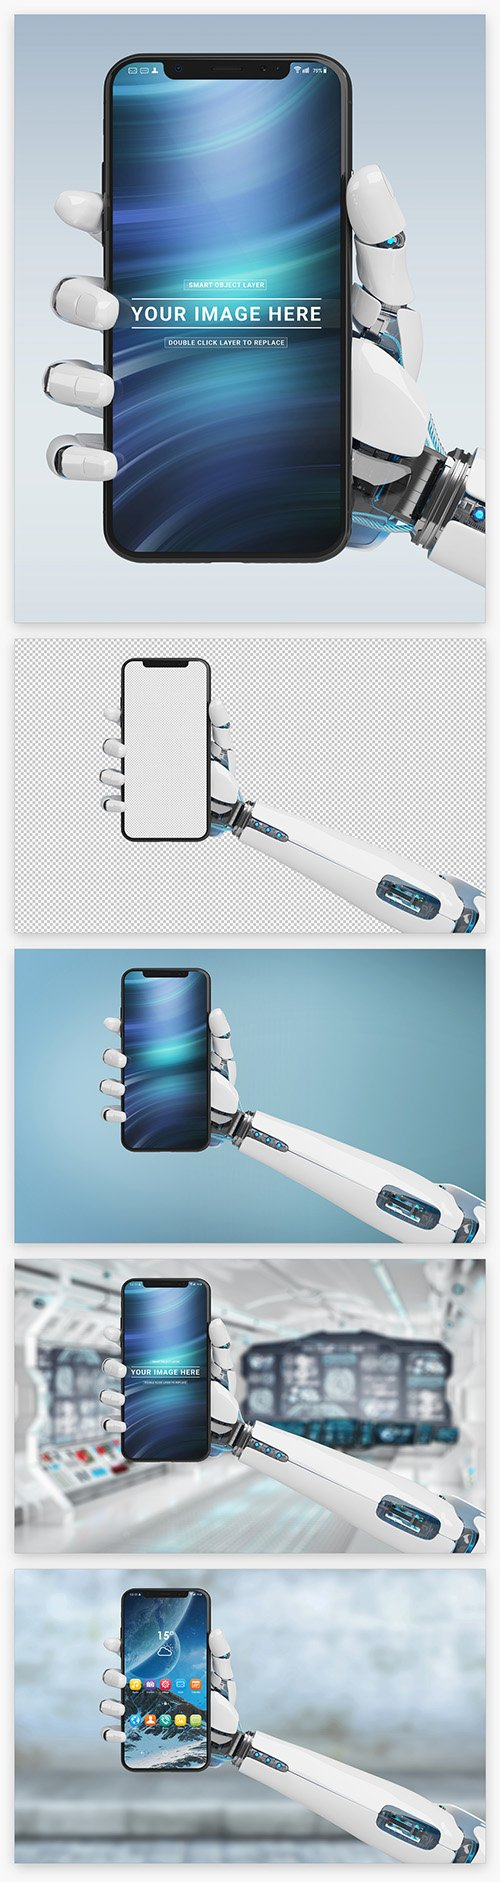 Isolated Smartphone in Robot Hand Mockup 220288620 PSDT